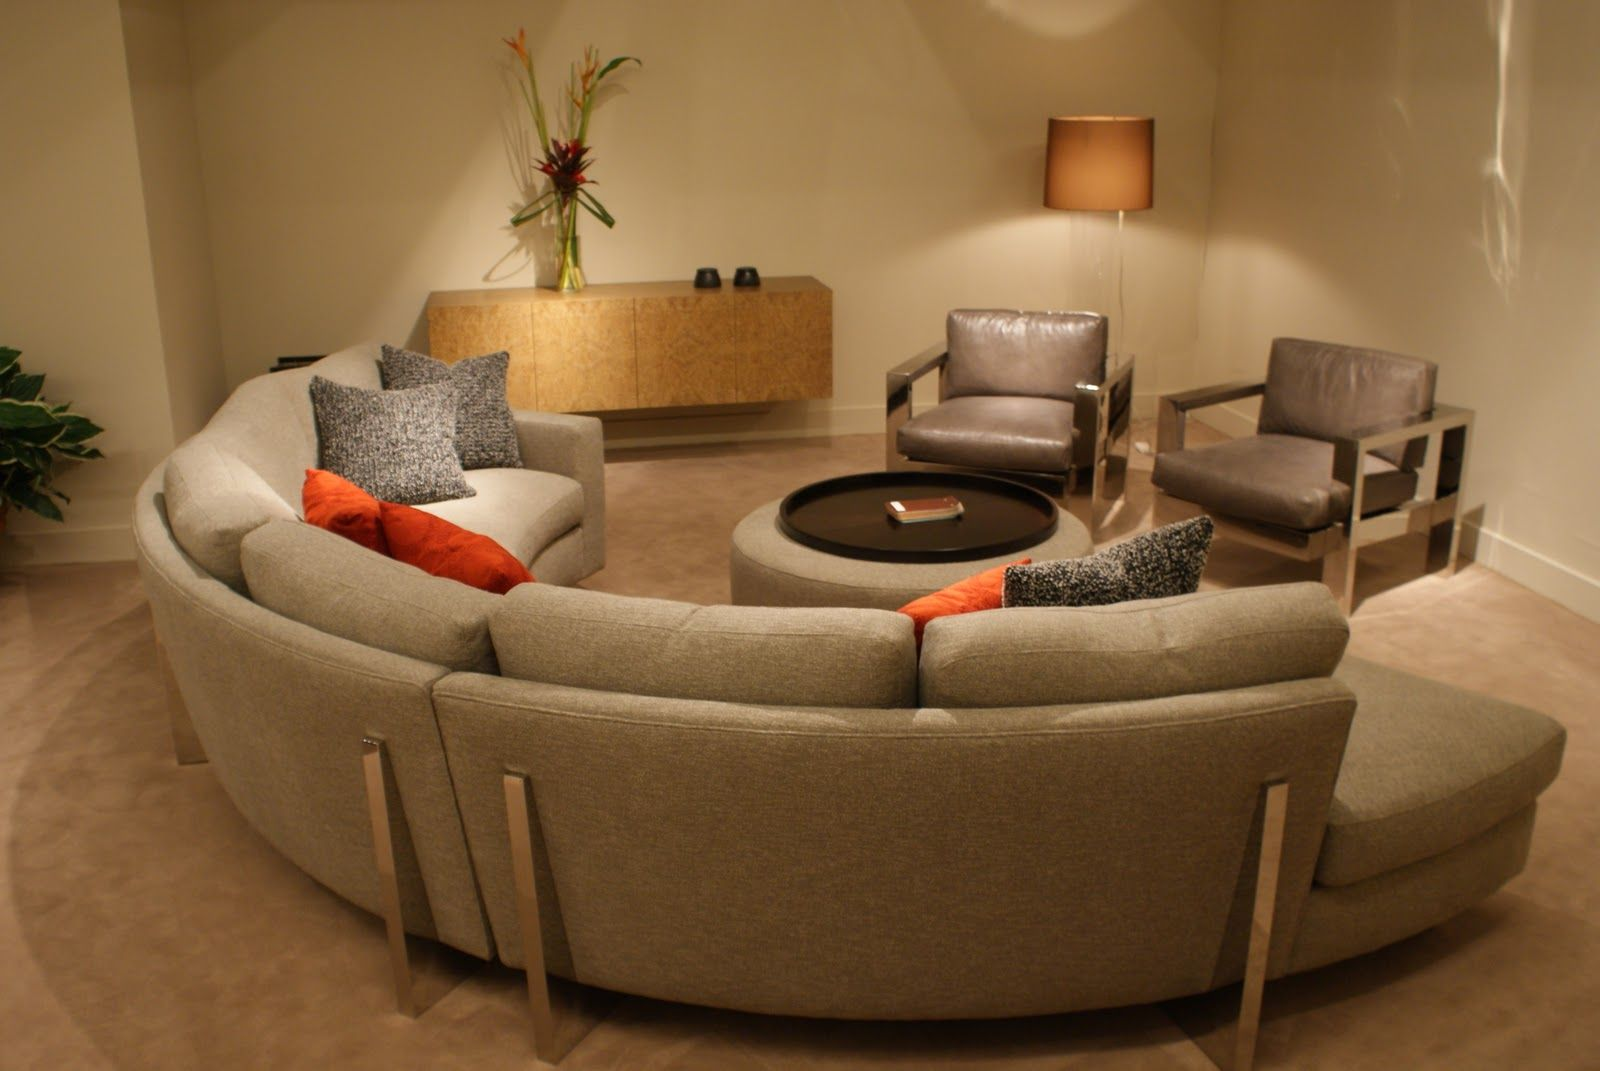 Cool Semi Circle Couch Room Design Living Room Designs Living Room